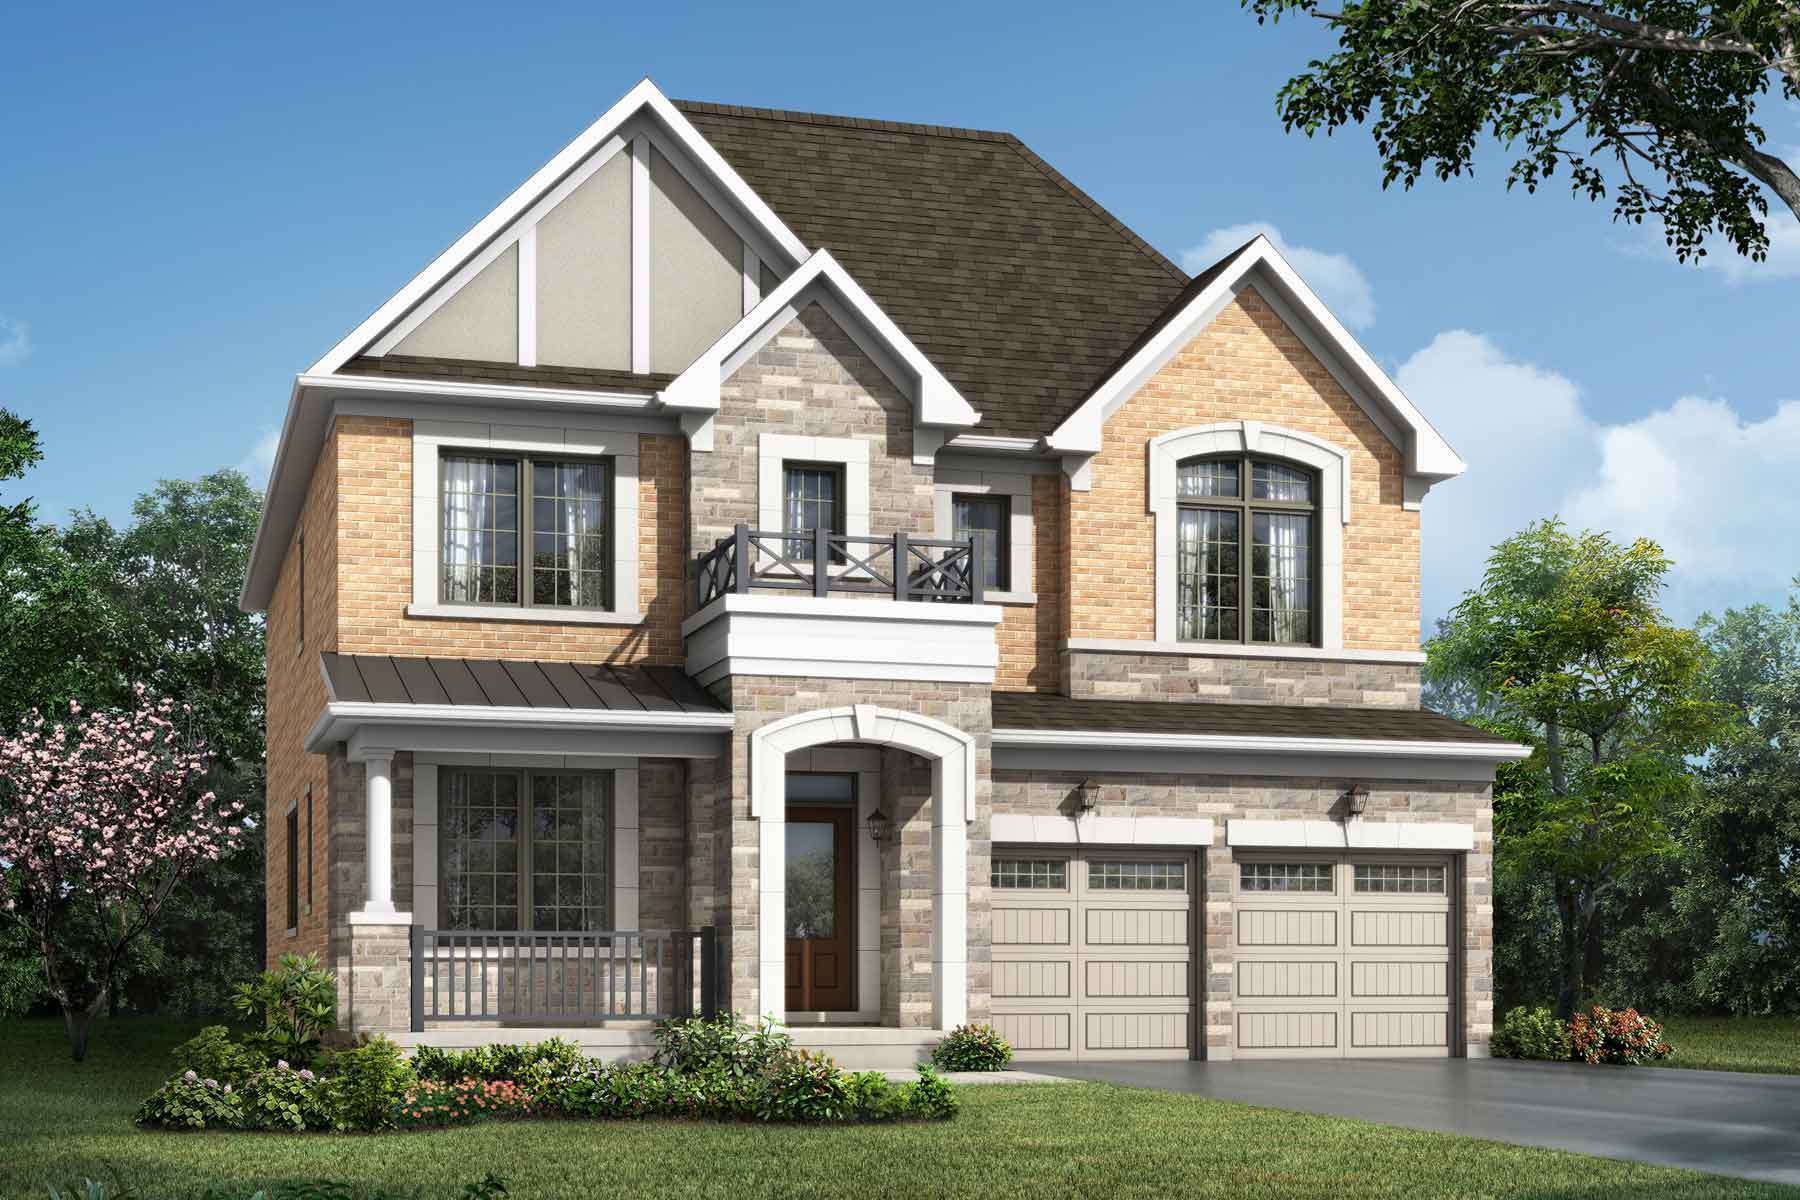 Lupin Corner Plan englishmanor_seatonwhitevale_claremont_main at Seaton Whitevale in Pickering Ontario by Mattamy Homes